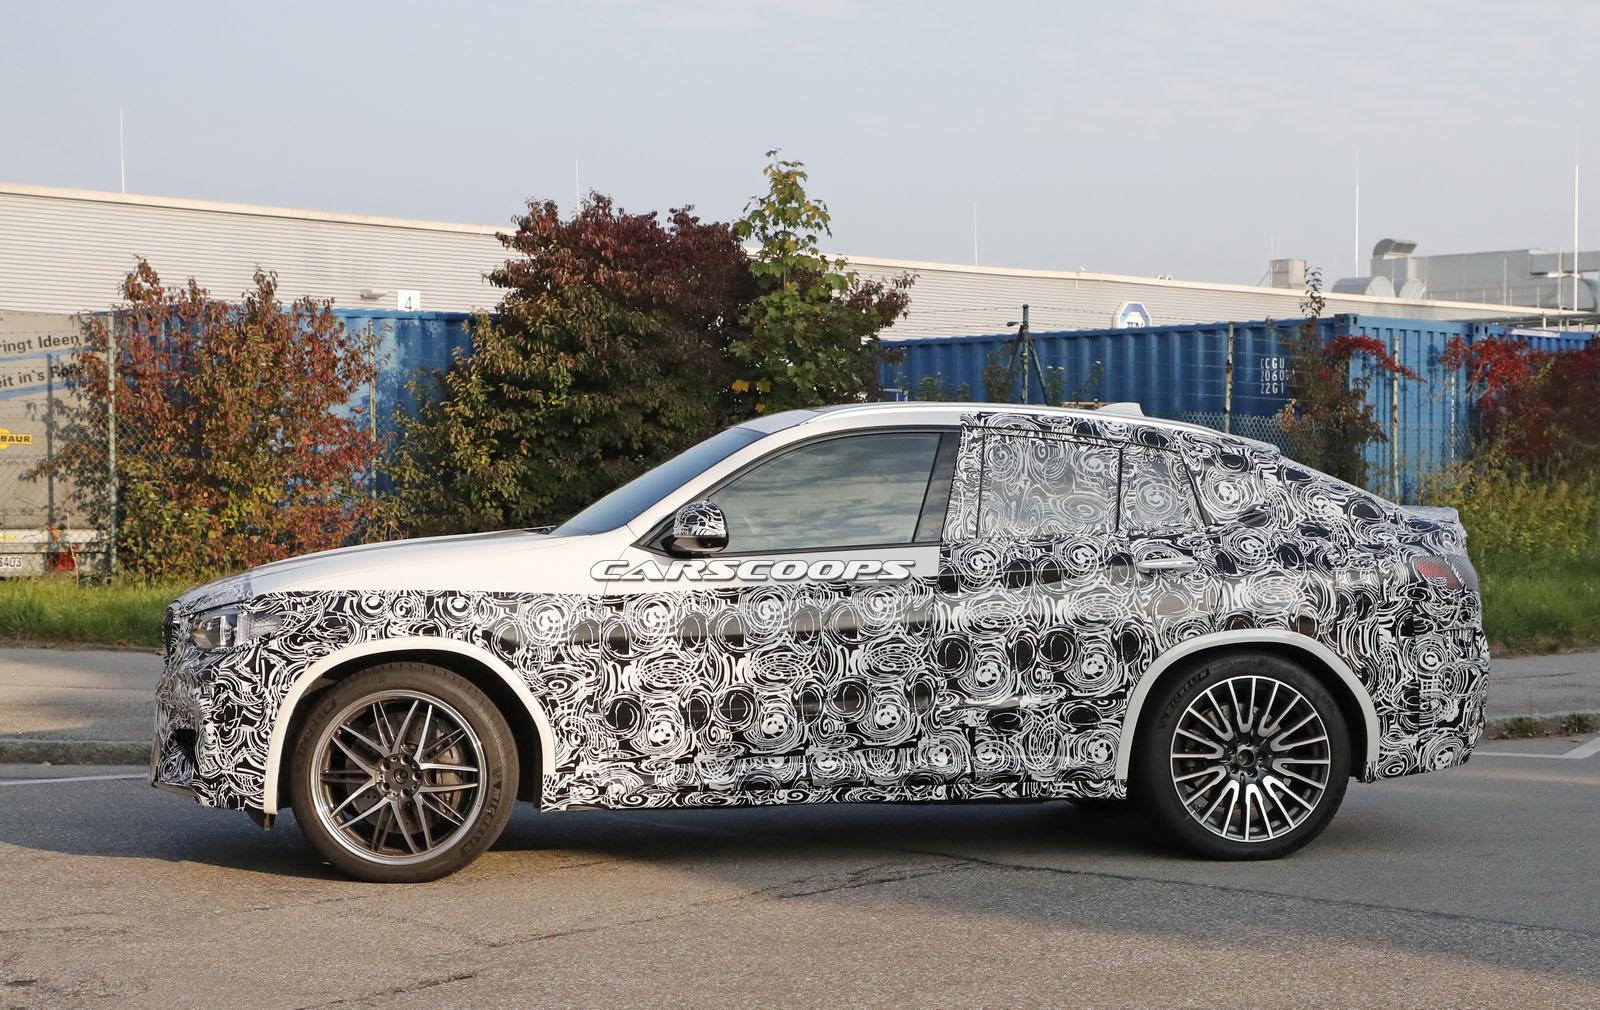 2019 bmw x4 m looks to knock mercedes amg glc coupe off its throne carscoops. Black Bedroom Furniture Sets. Home Design Ideas